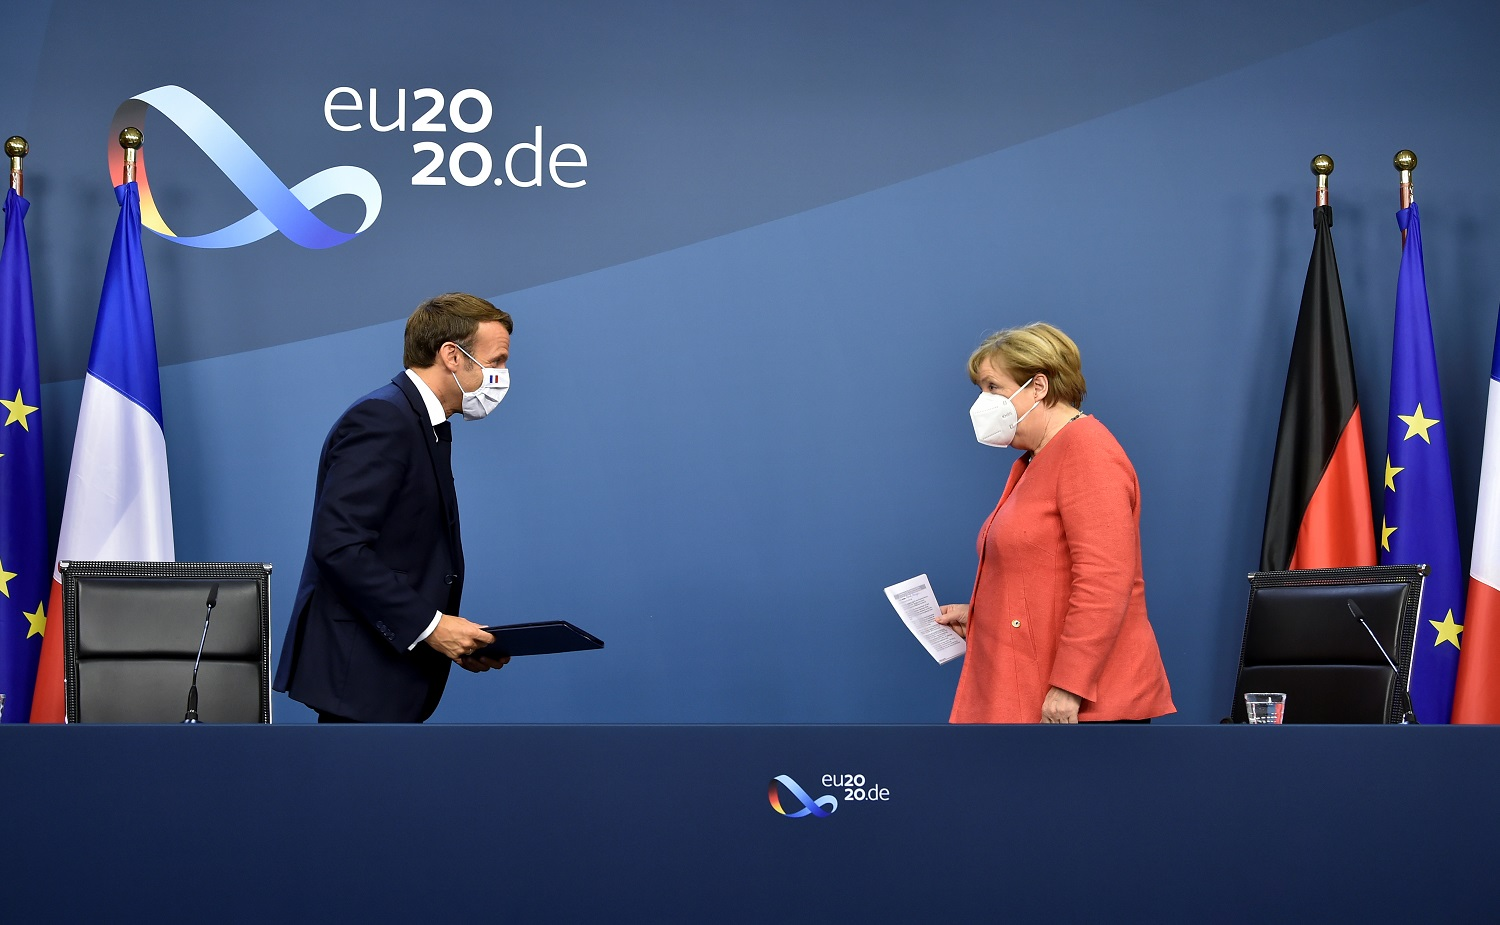 German Chancellor Angela Merkel and French President Emmanuel Macron leave after their joint video press conference at the end of the European summit at the EU headquarters in Brussels, Belgium July 21, 2020. John Thys/Pool via REUTERS